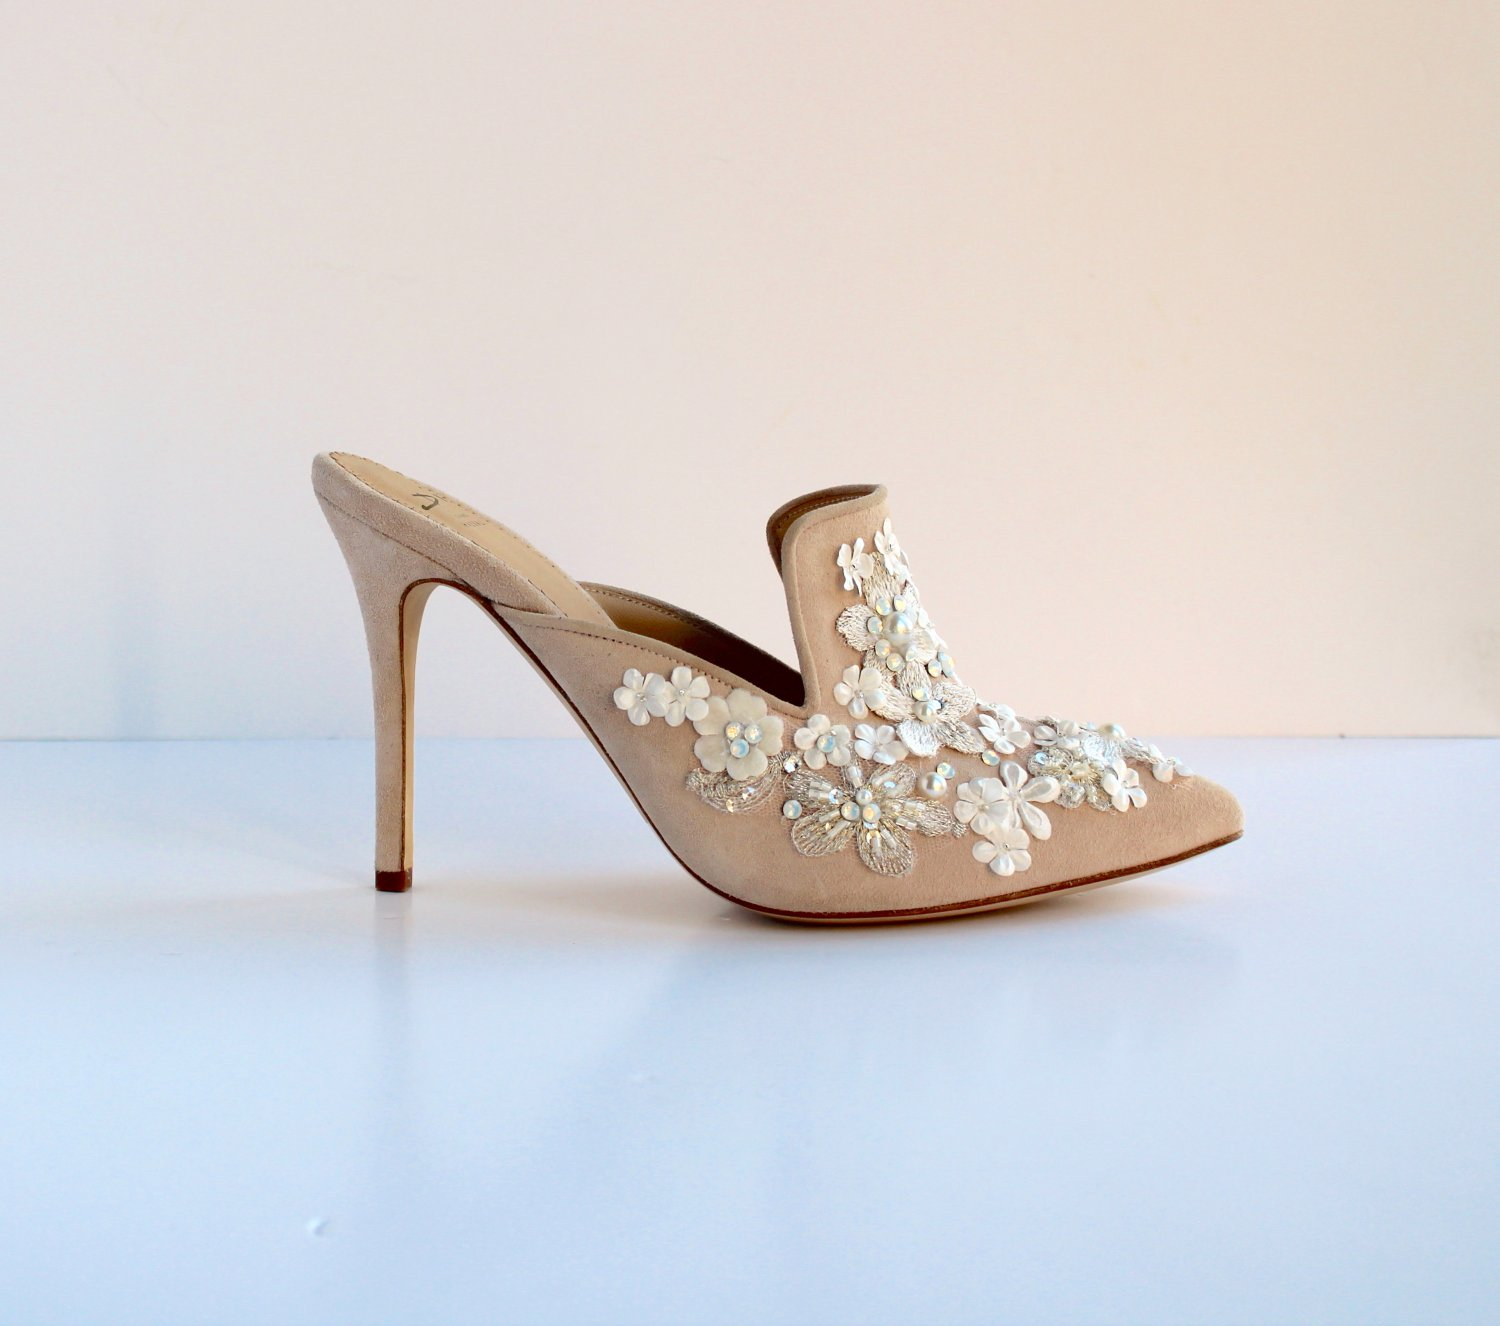 nude suede mule with ivory silk and believer daisy embellishment